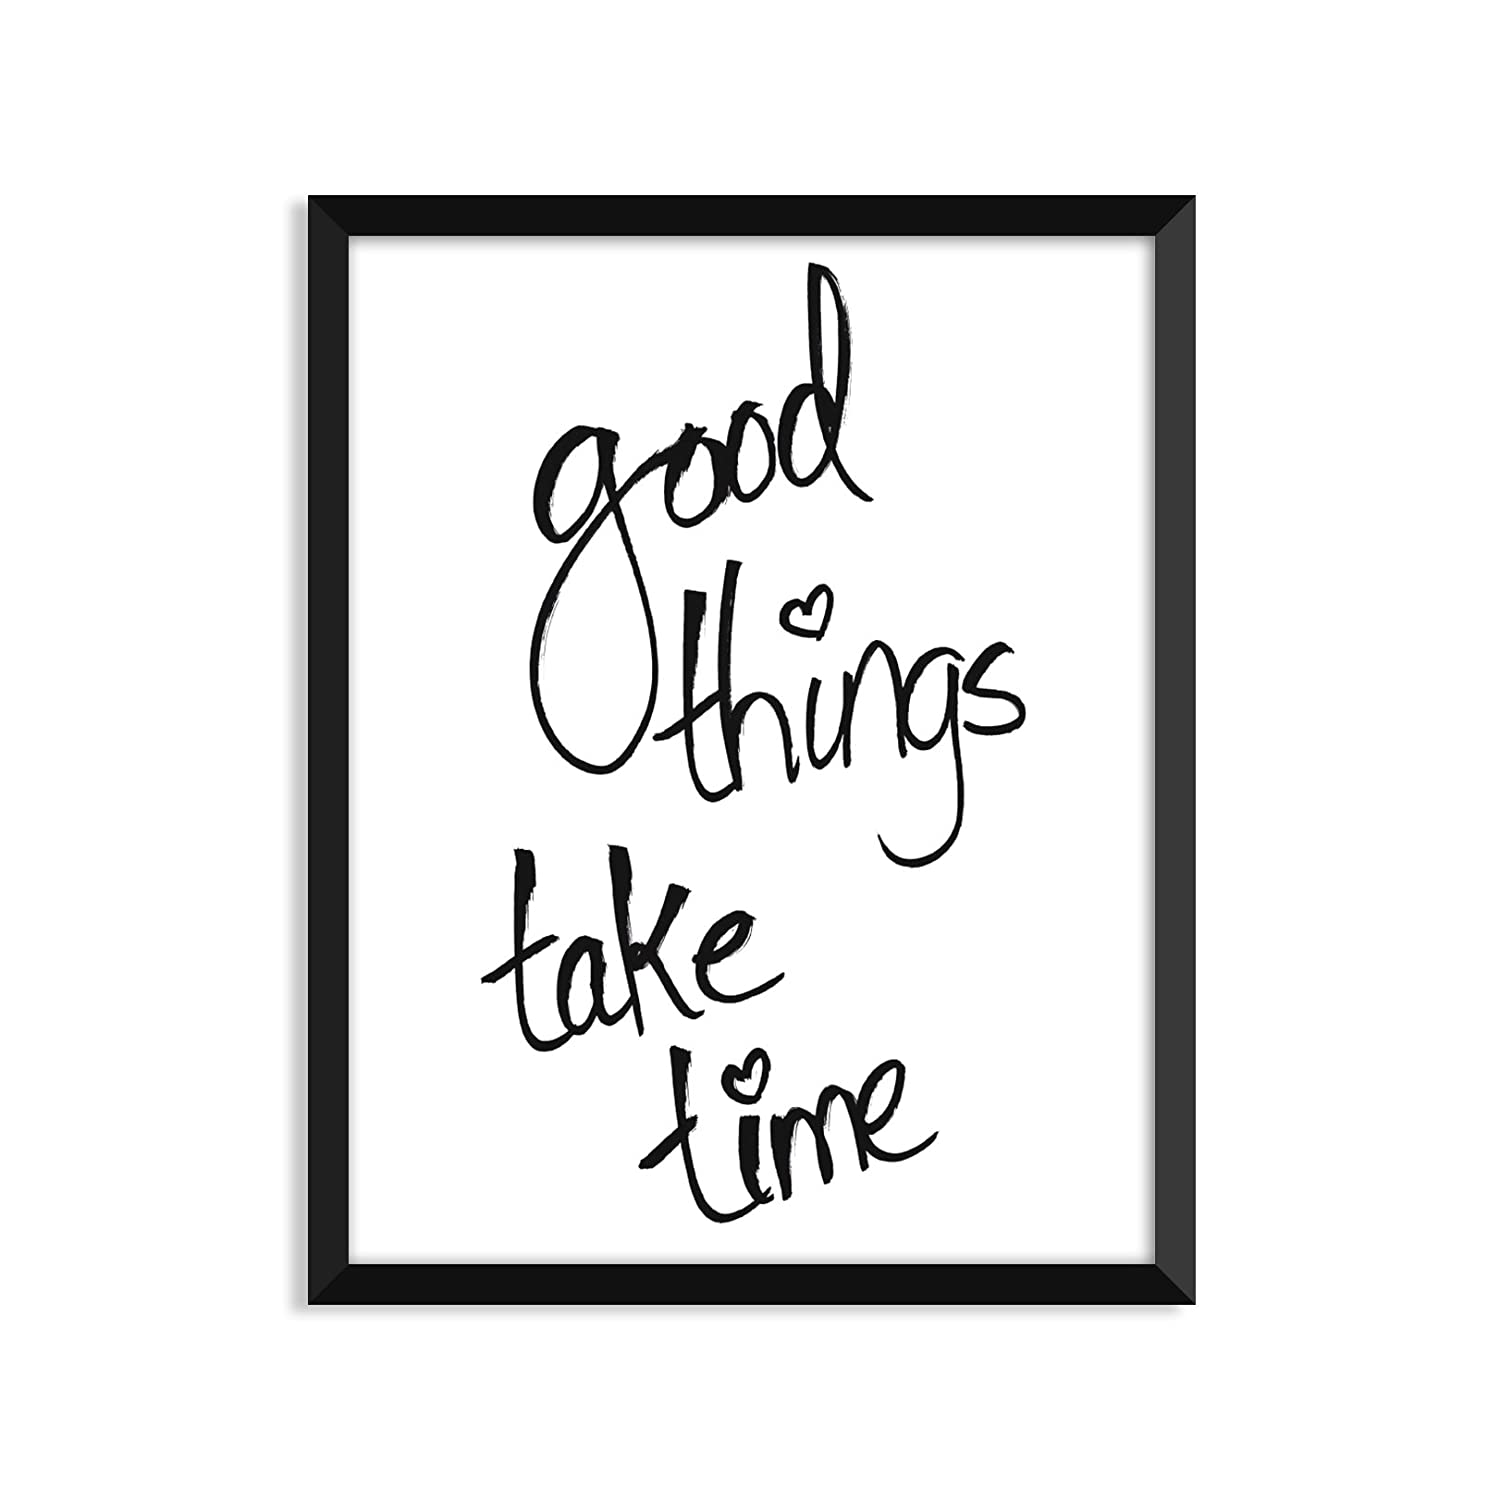 Good Things Take Time – UnframedアートプリントポスターまたはGreeting Card A2 Greeting Card B074ZZY6PQ  A2 Greeting Card